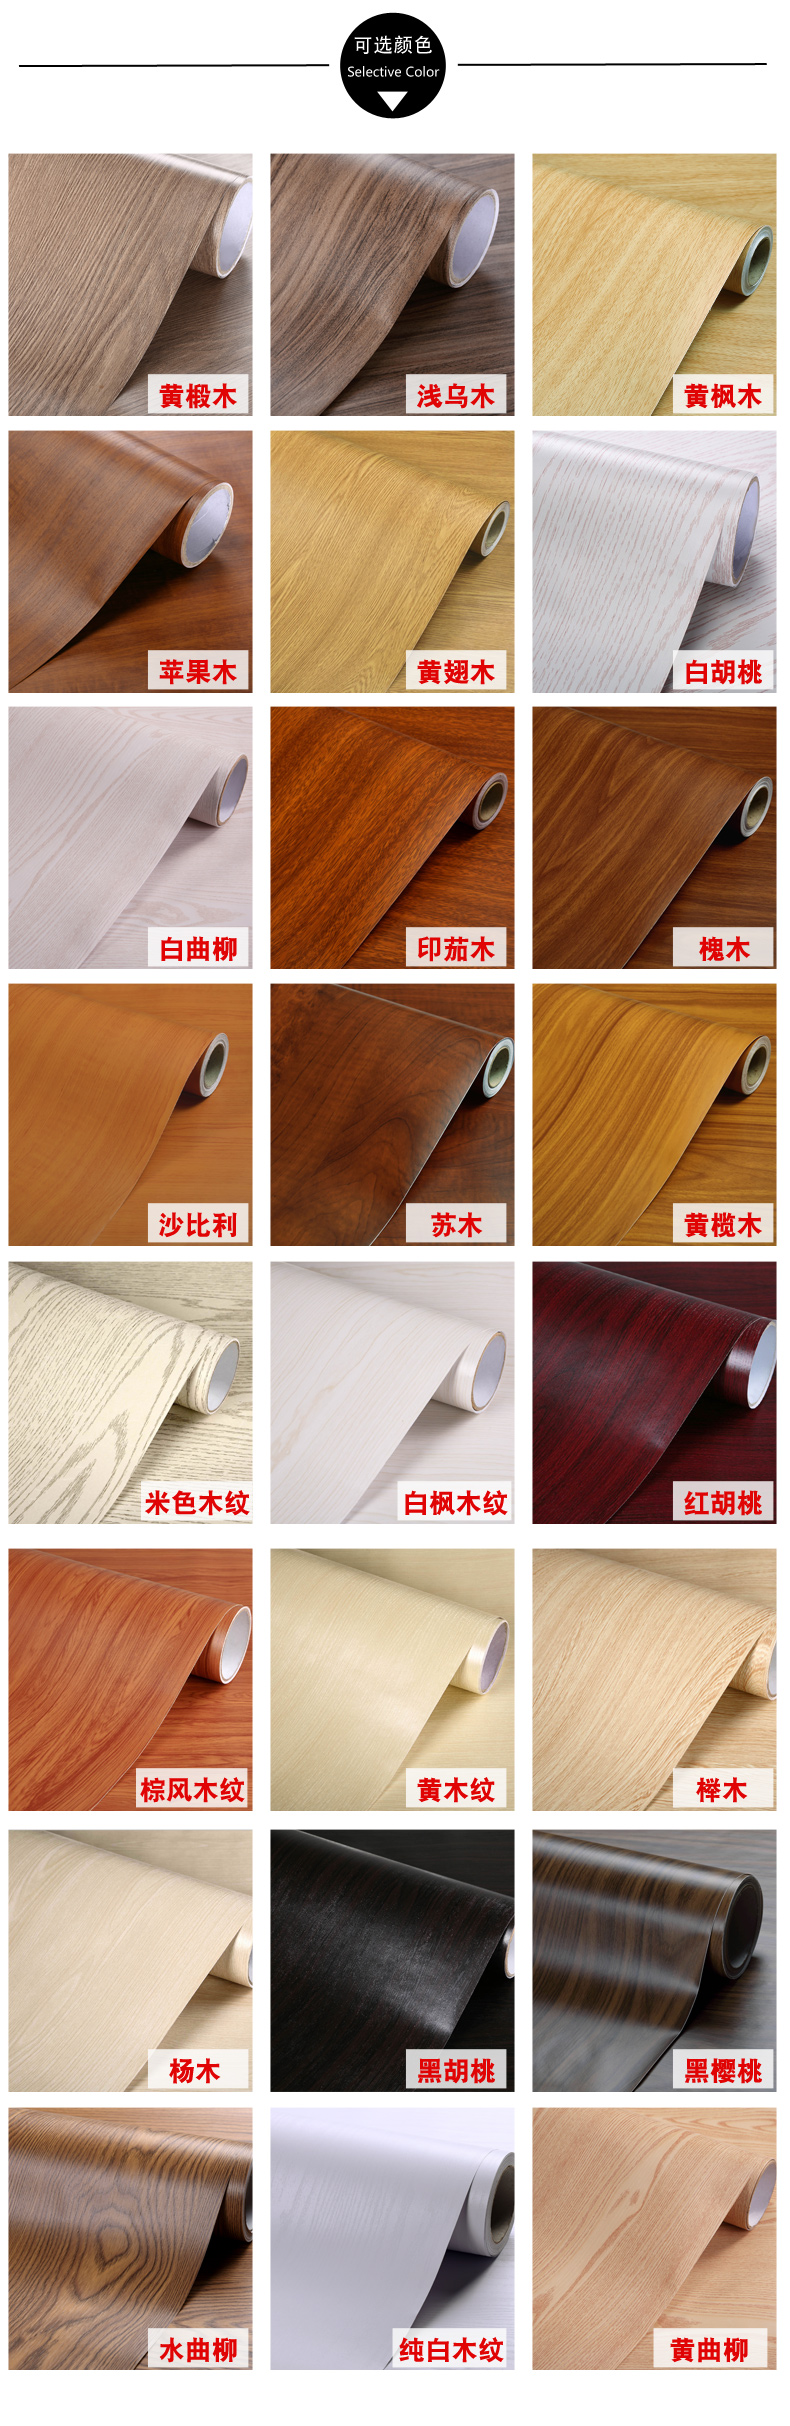 Kitchen waterproof wall thickening balcony ground floor tile floor tile stick resistant adhesive restaurant stickers stickers renovation